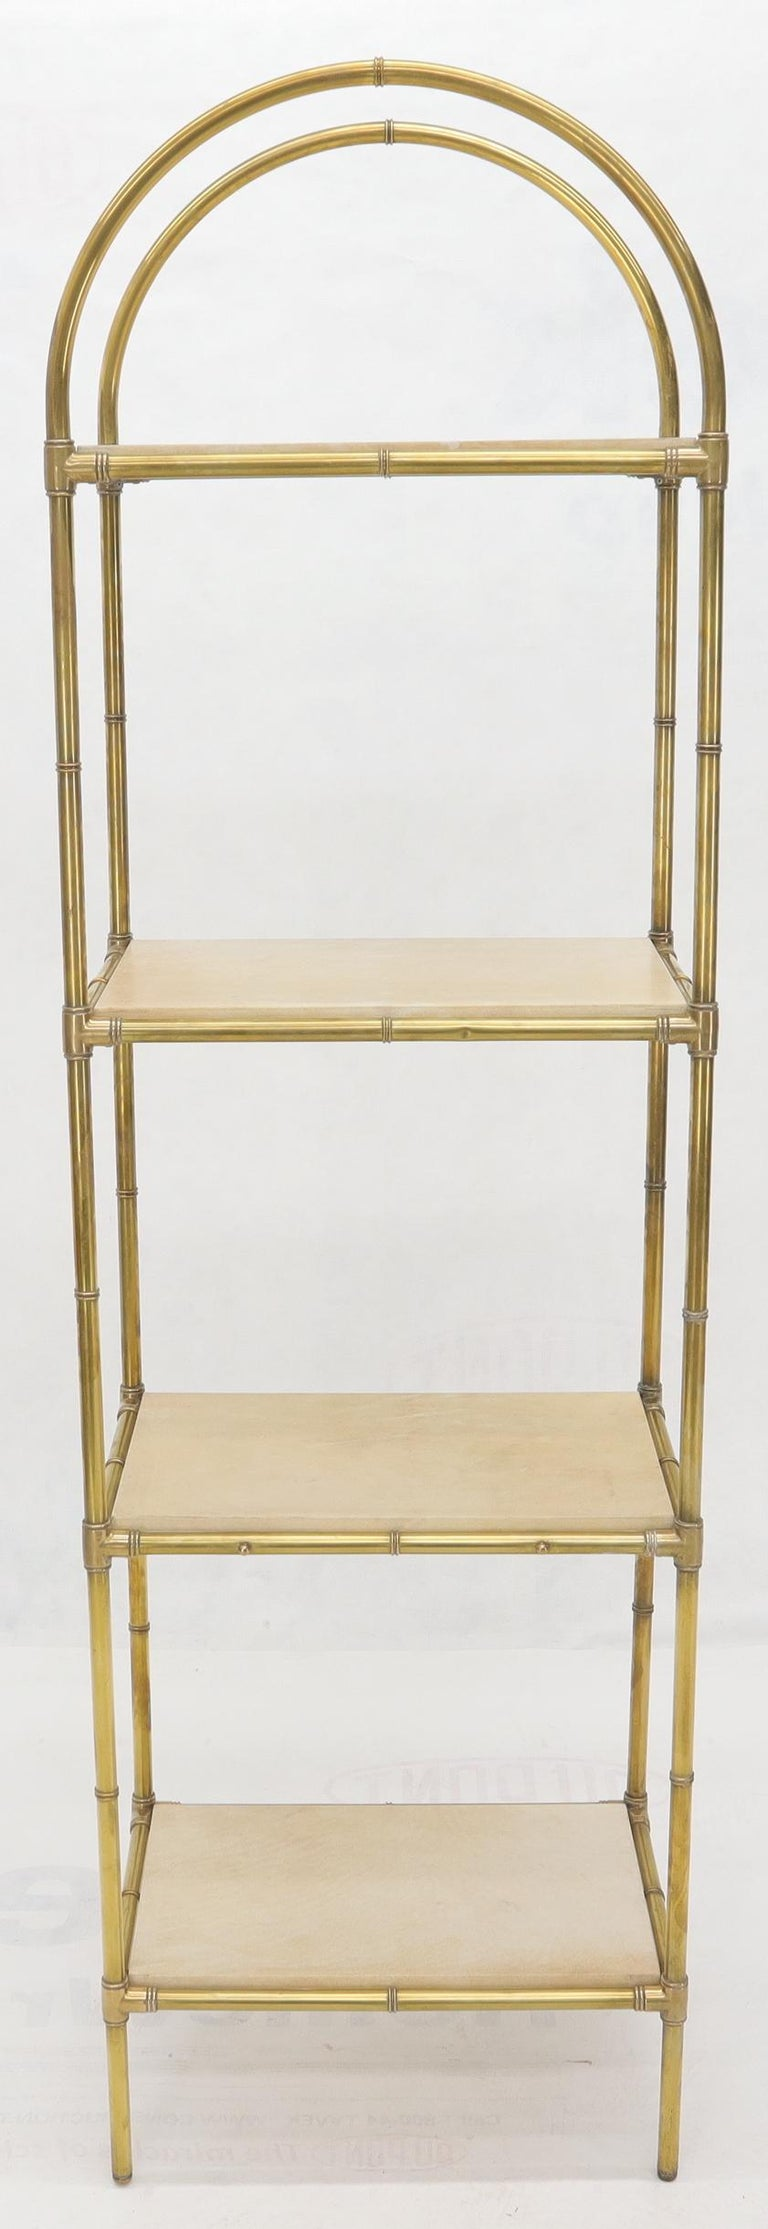 20th Century Pair Solid Brass Faux Bamboo Arch Shape Top Goat Skin Parchment Shelves Etageres For Sale